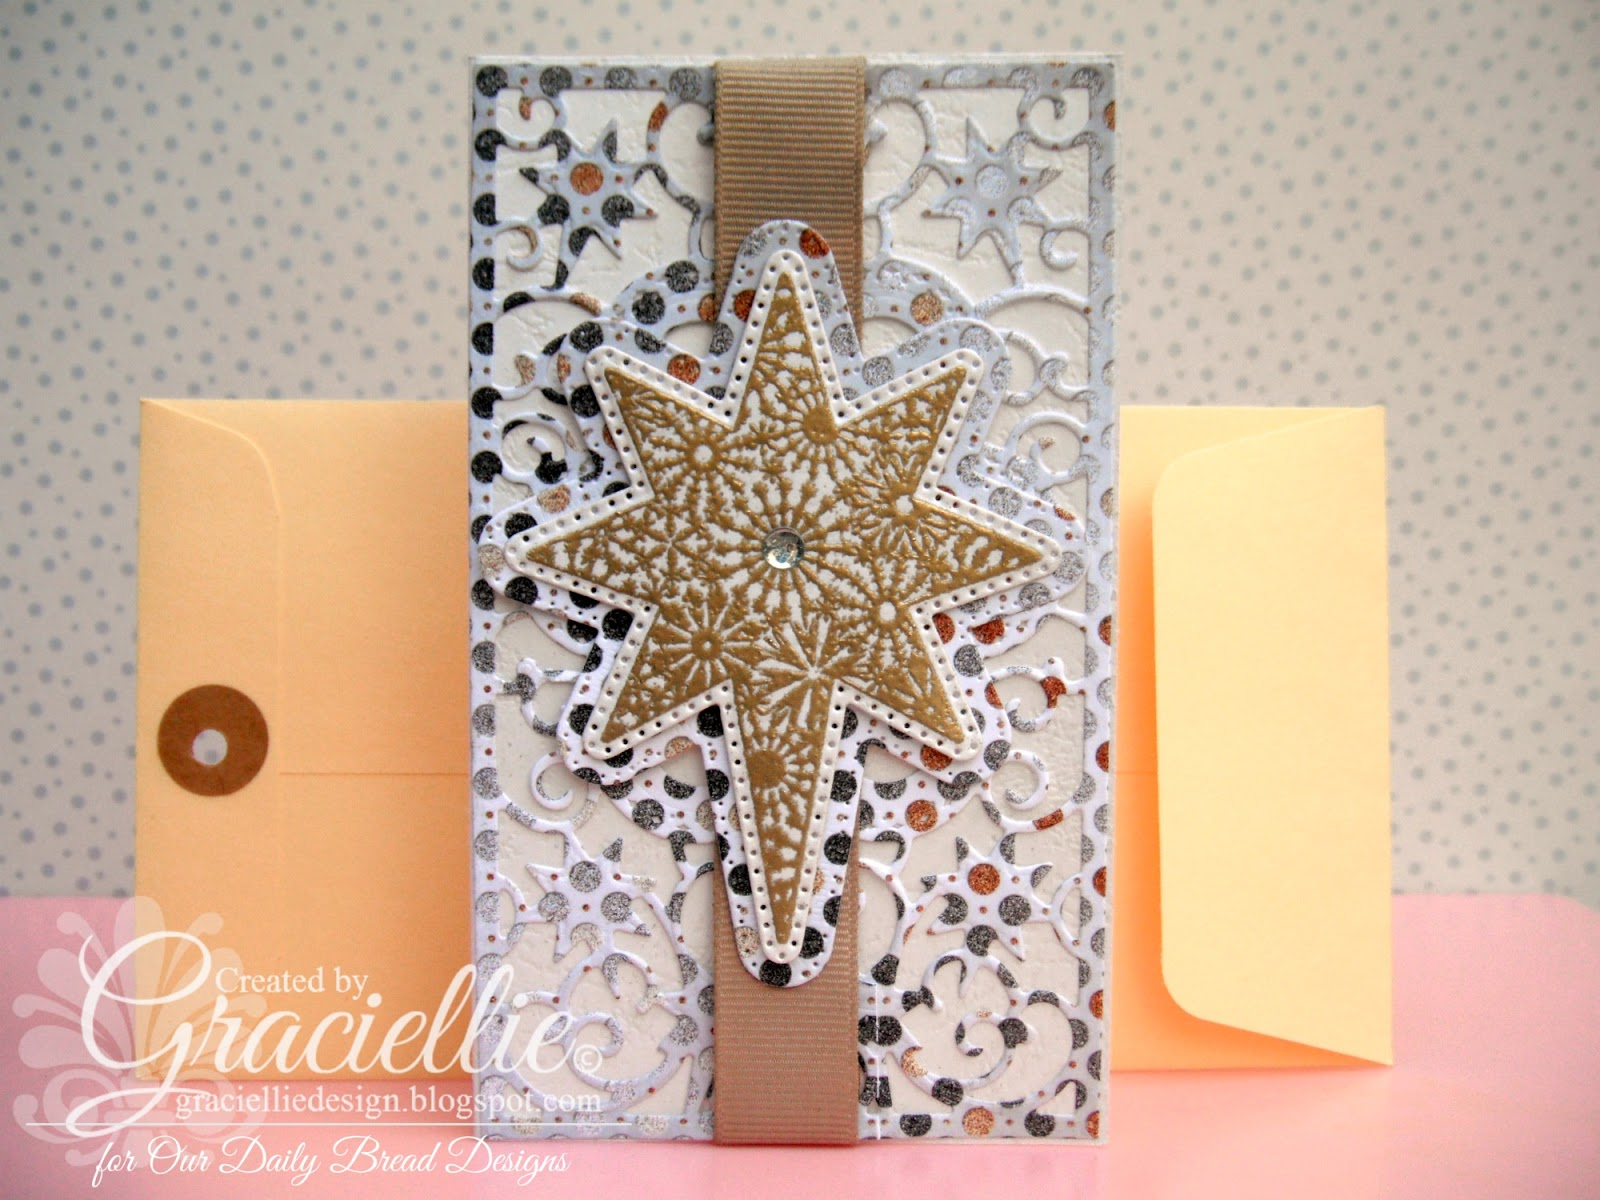 Stamps - Our Daily Bread Designs Snowflake Stars, ODBD Custom Flourished Star Pattern Die, ODBD Custom Splendorous Stars Dies, ODBD Winter Paper Collection 2014